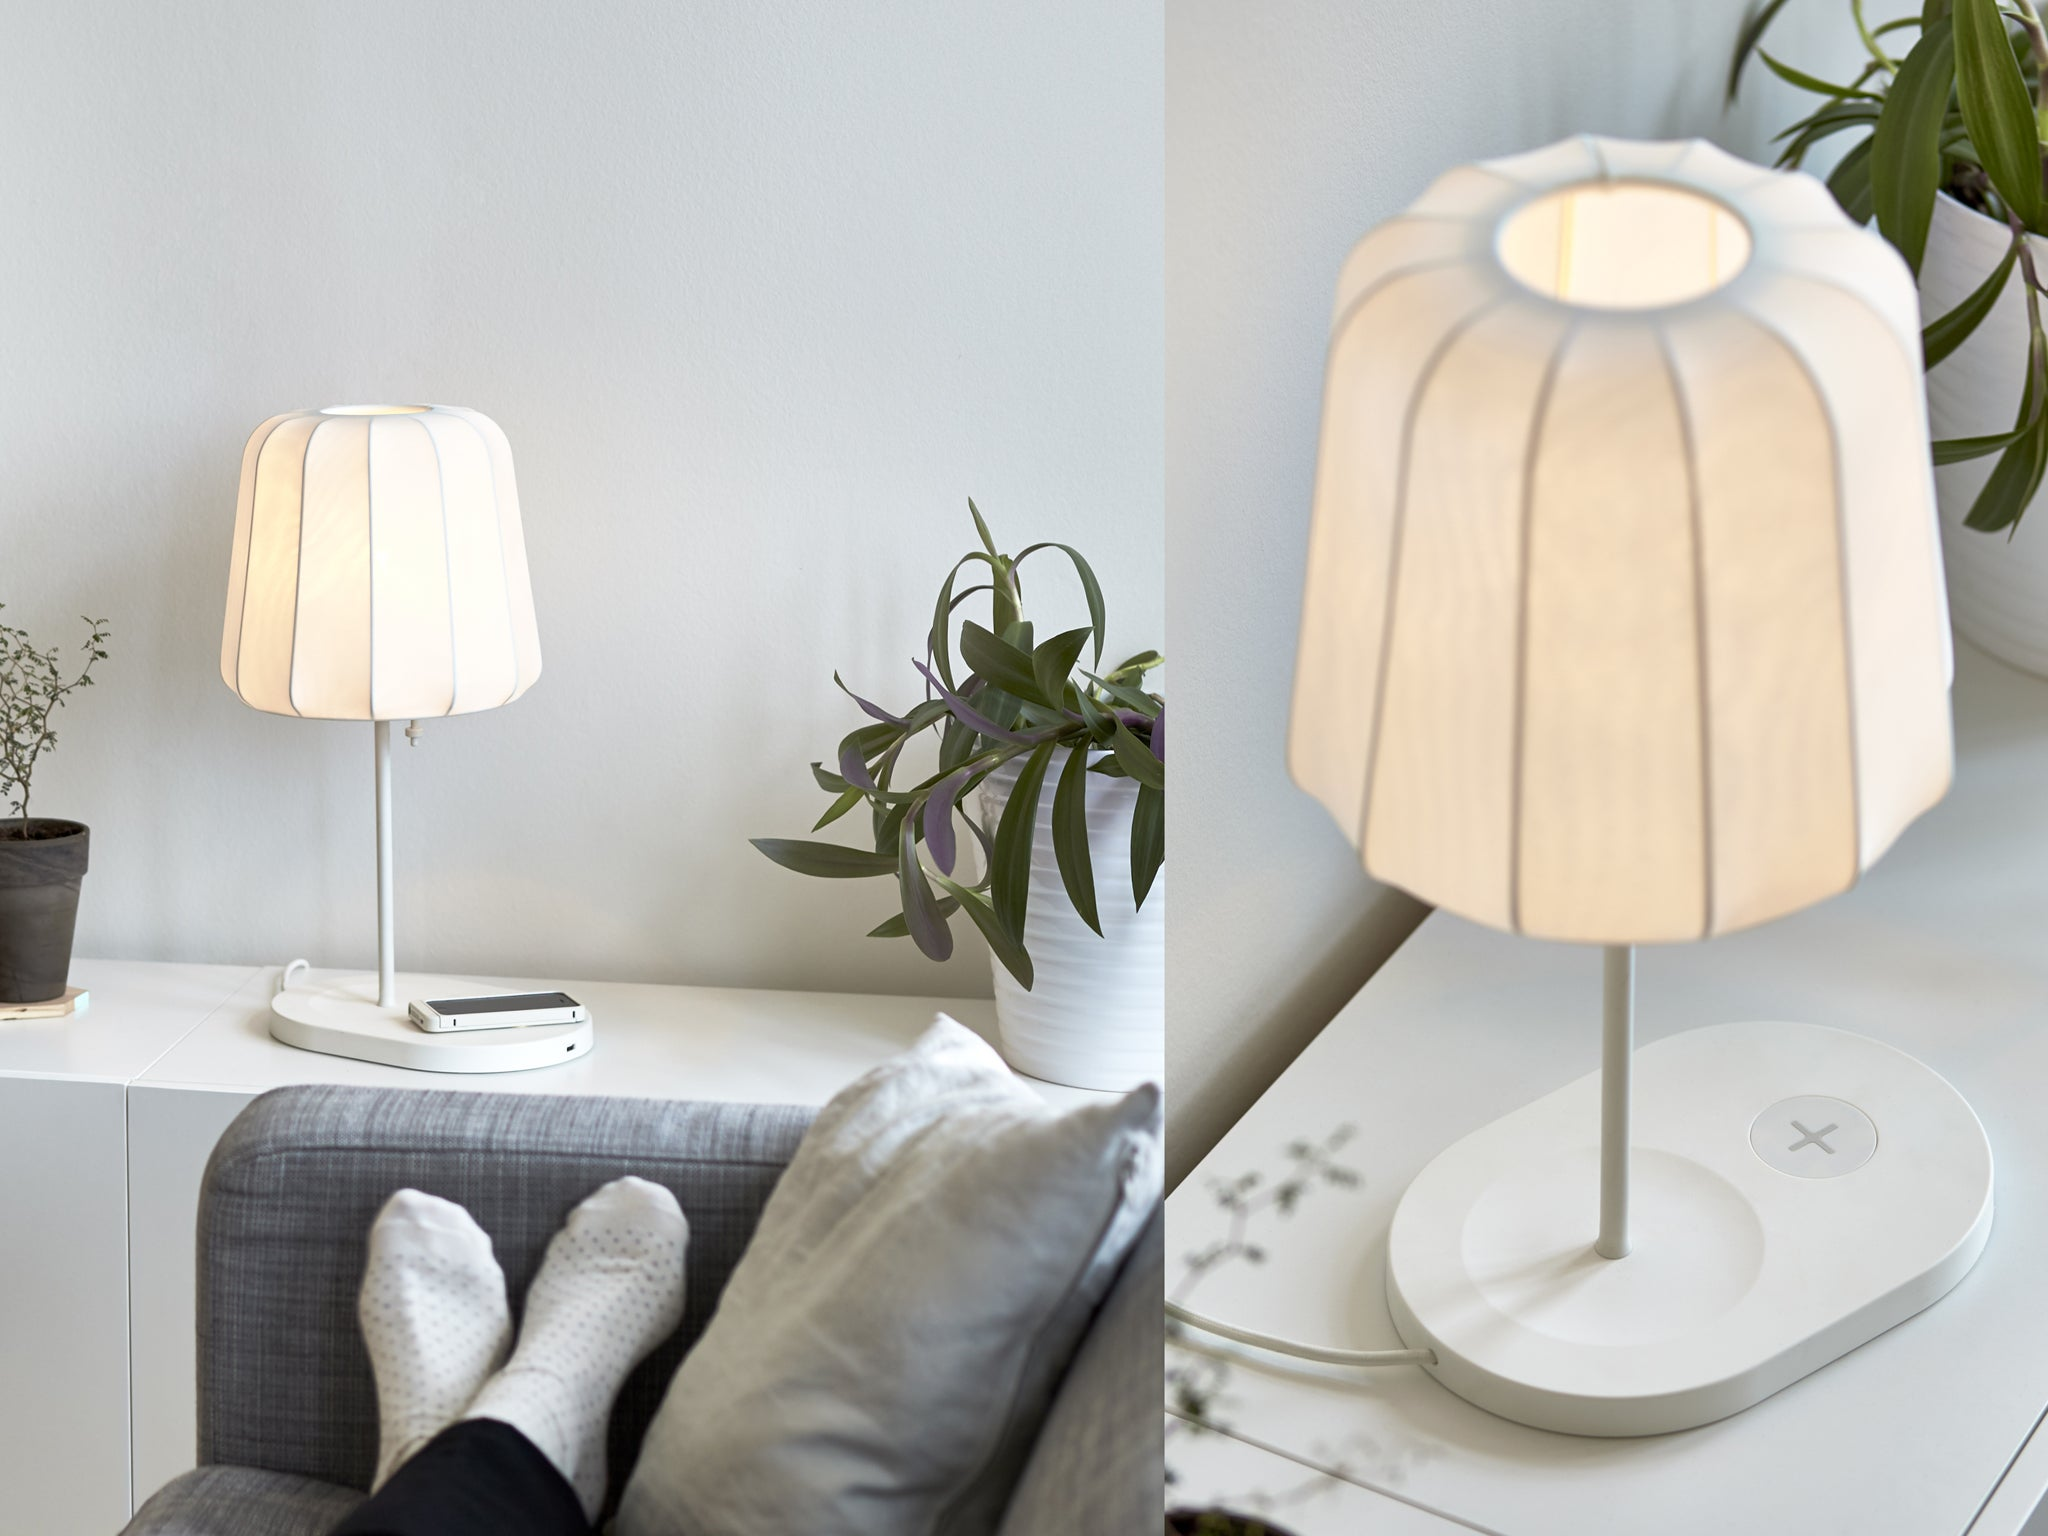 Ikea Launches Wireless Charging Furniture The Independent